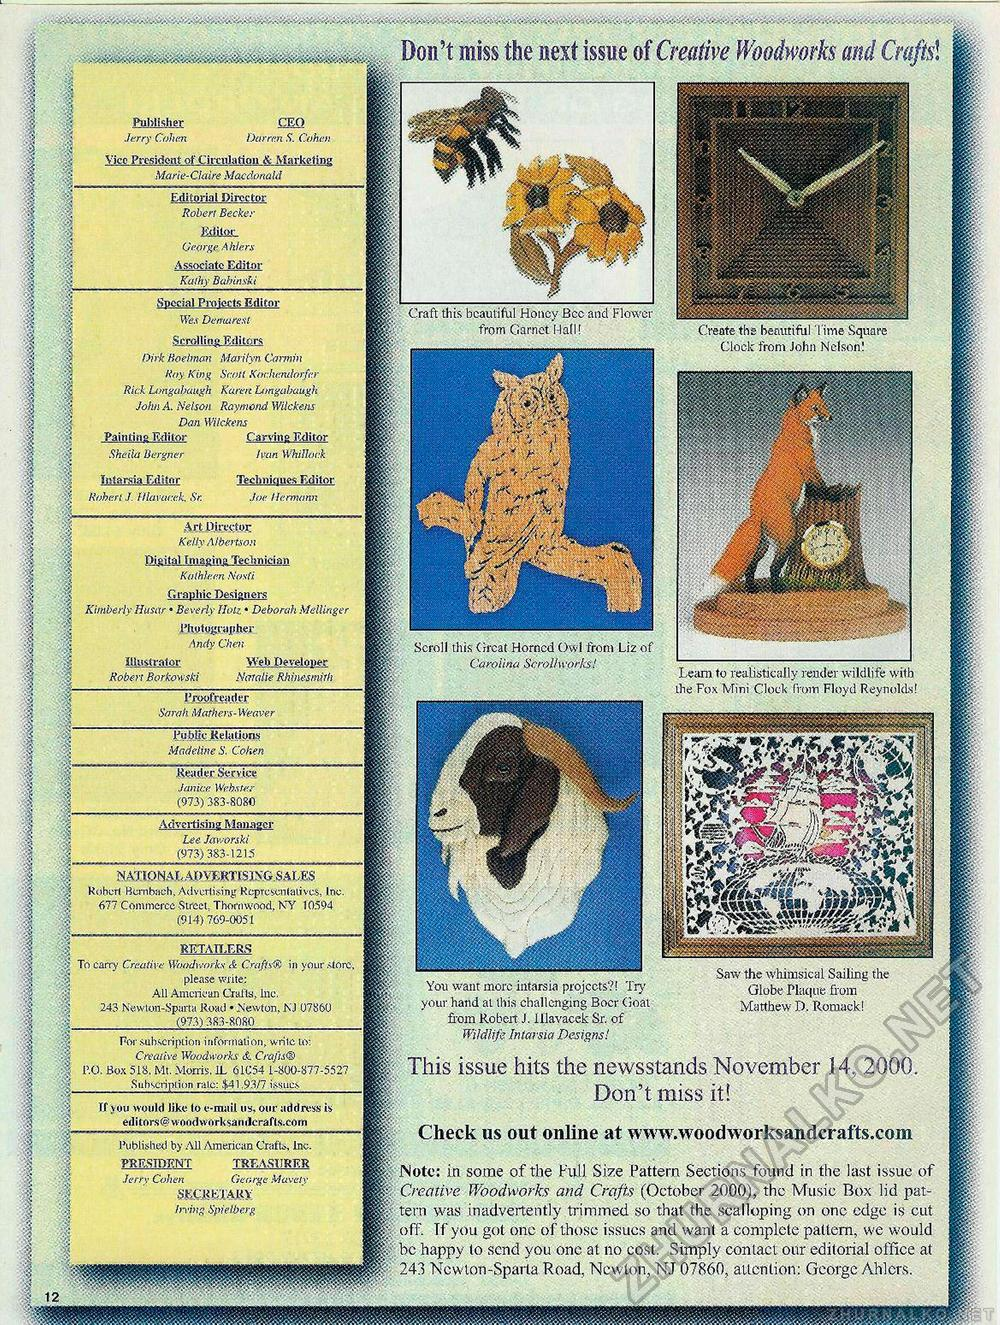 Creative Woodworks & crafts 2000-11, страница 12